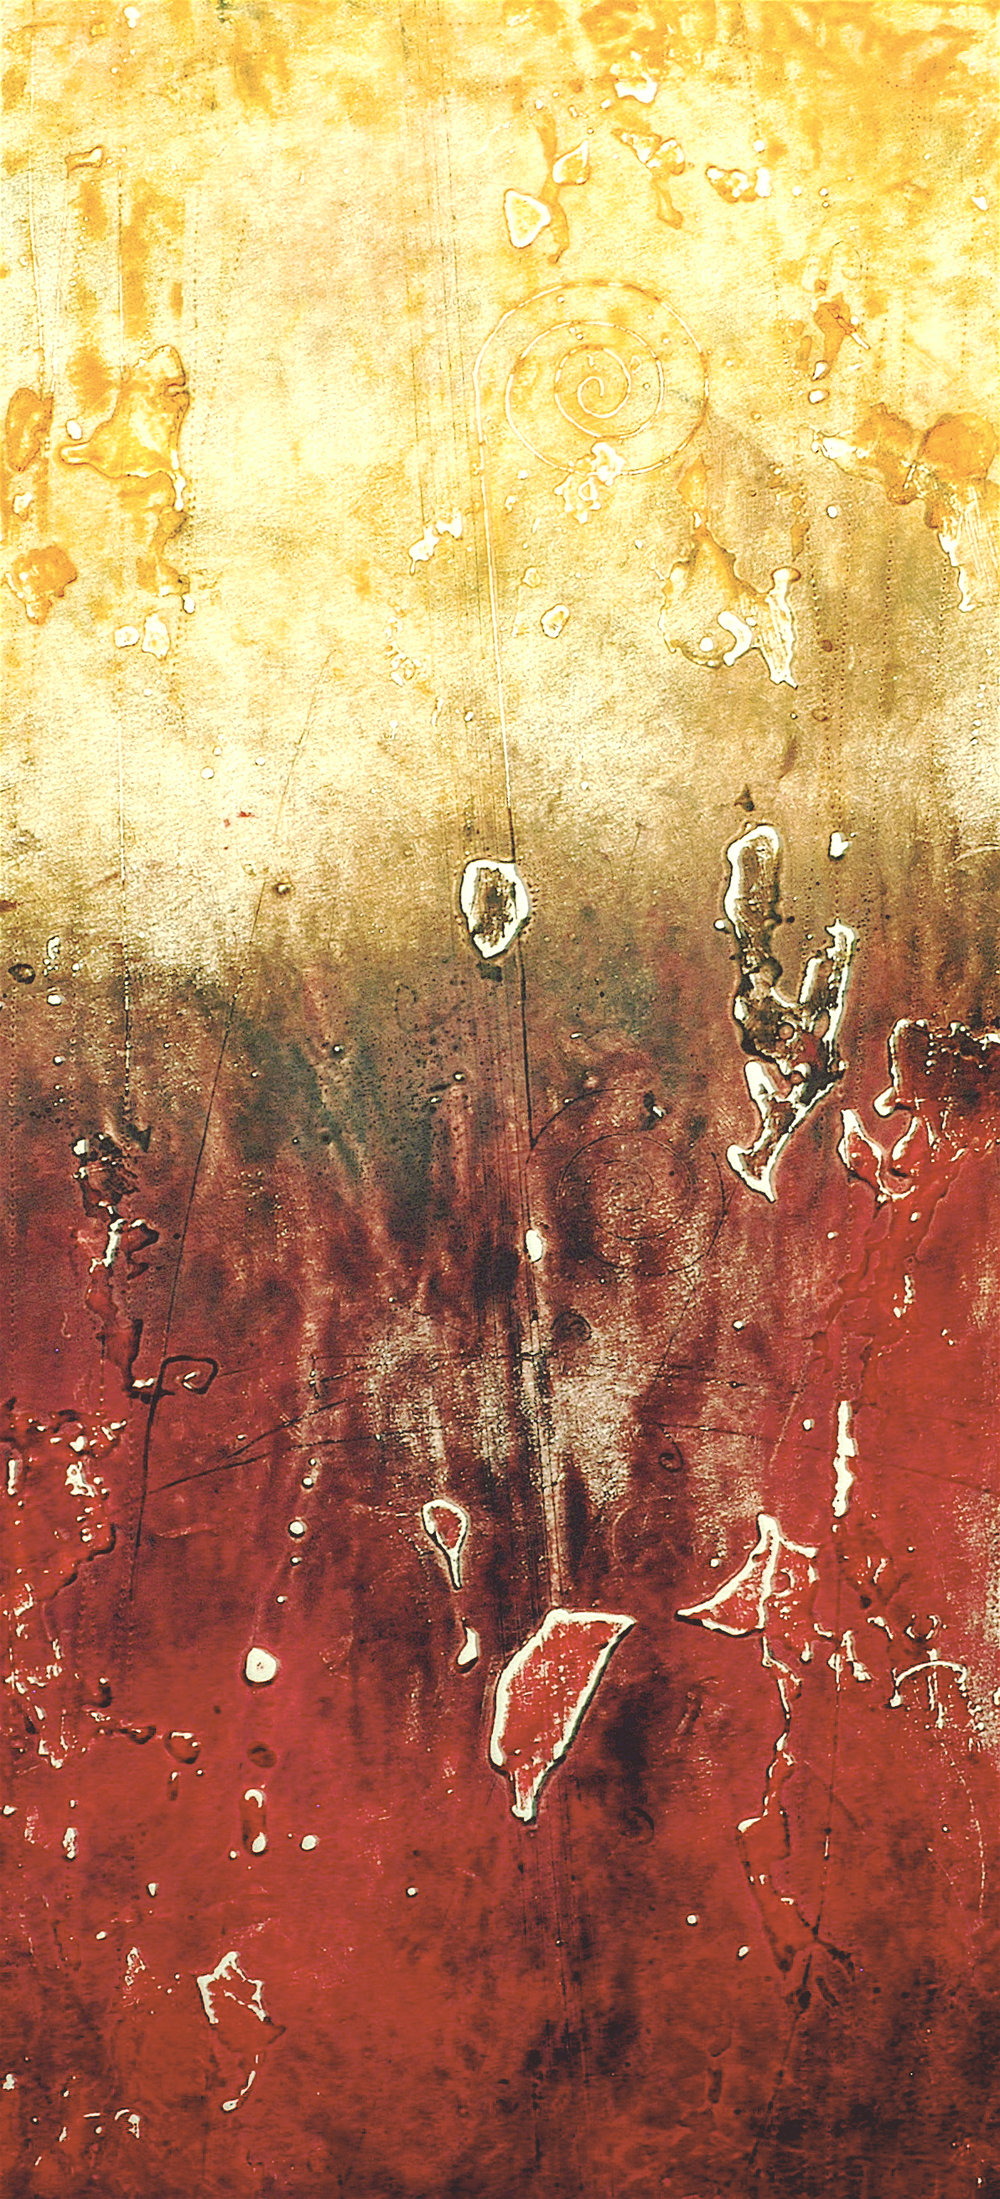 Hadron Print 2 , encaustic collagraph monoprint on paper 24 x 12 inches.   Studio Inventory